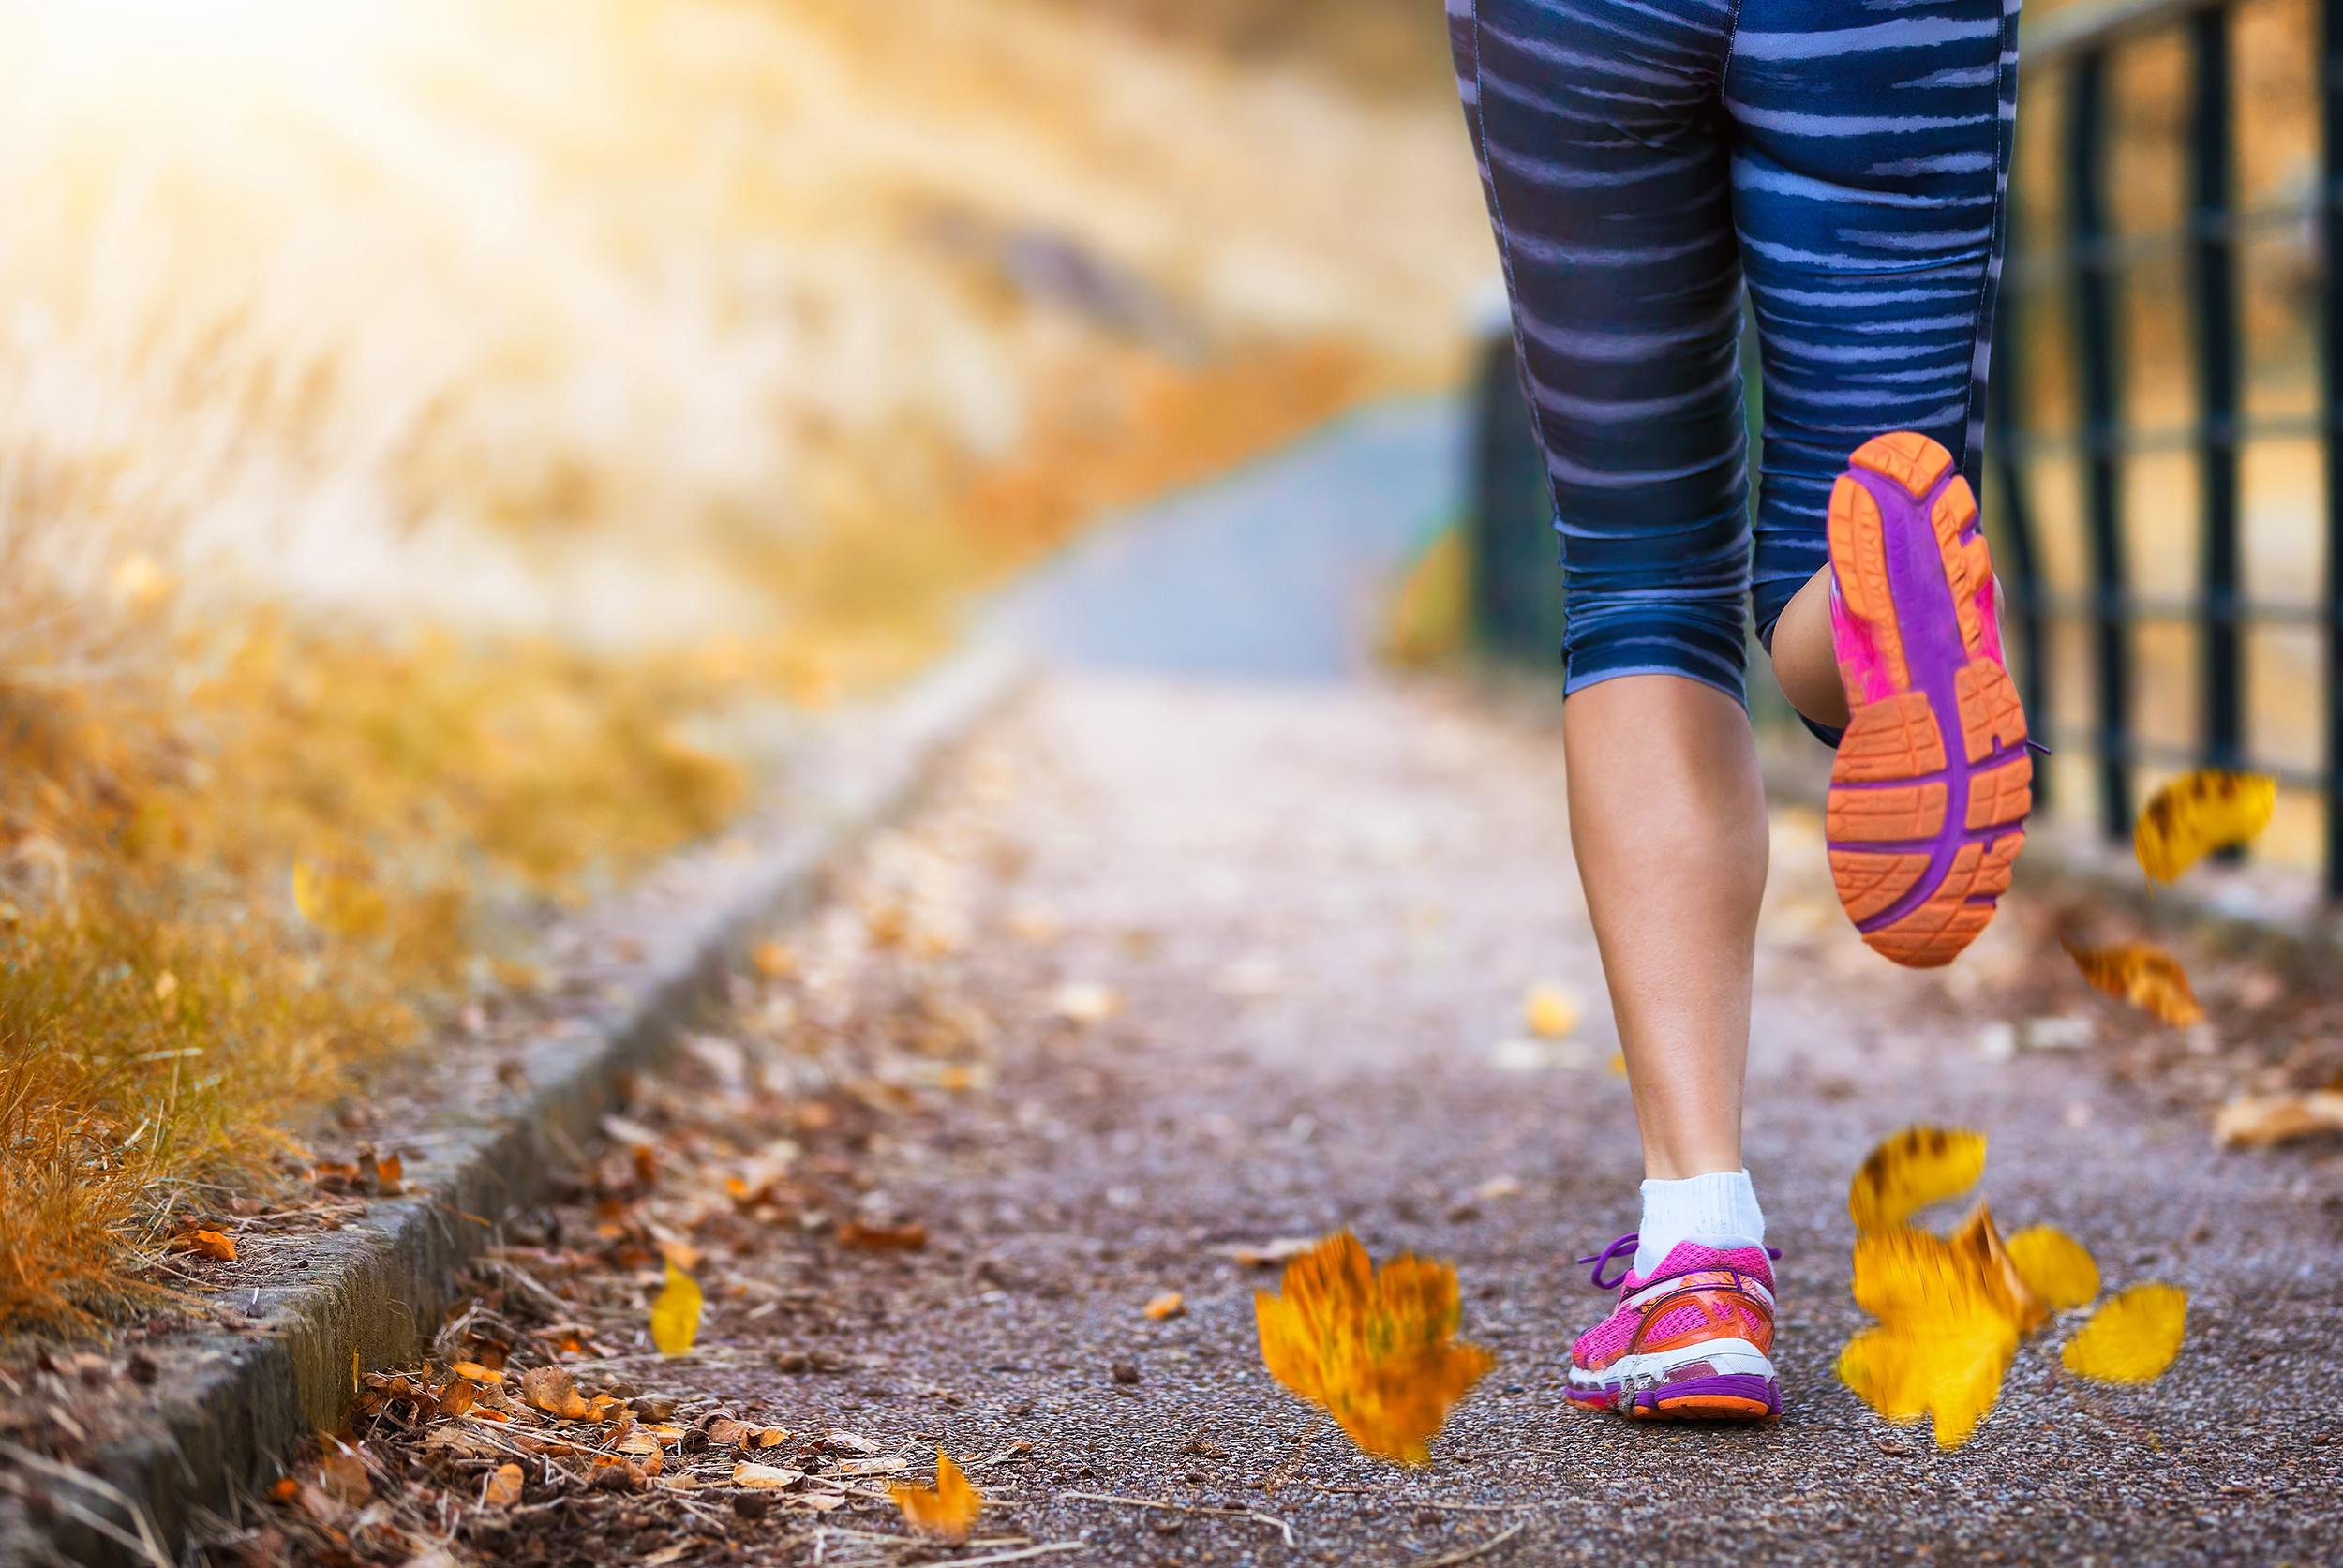 Running to lose weight: Does it really work?